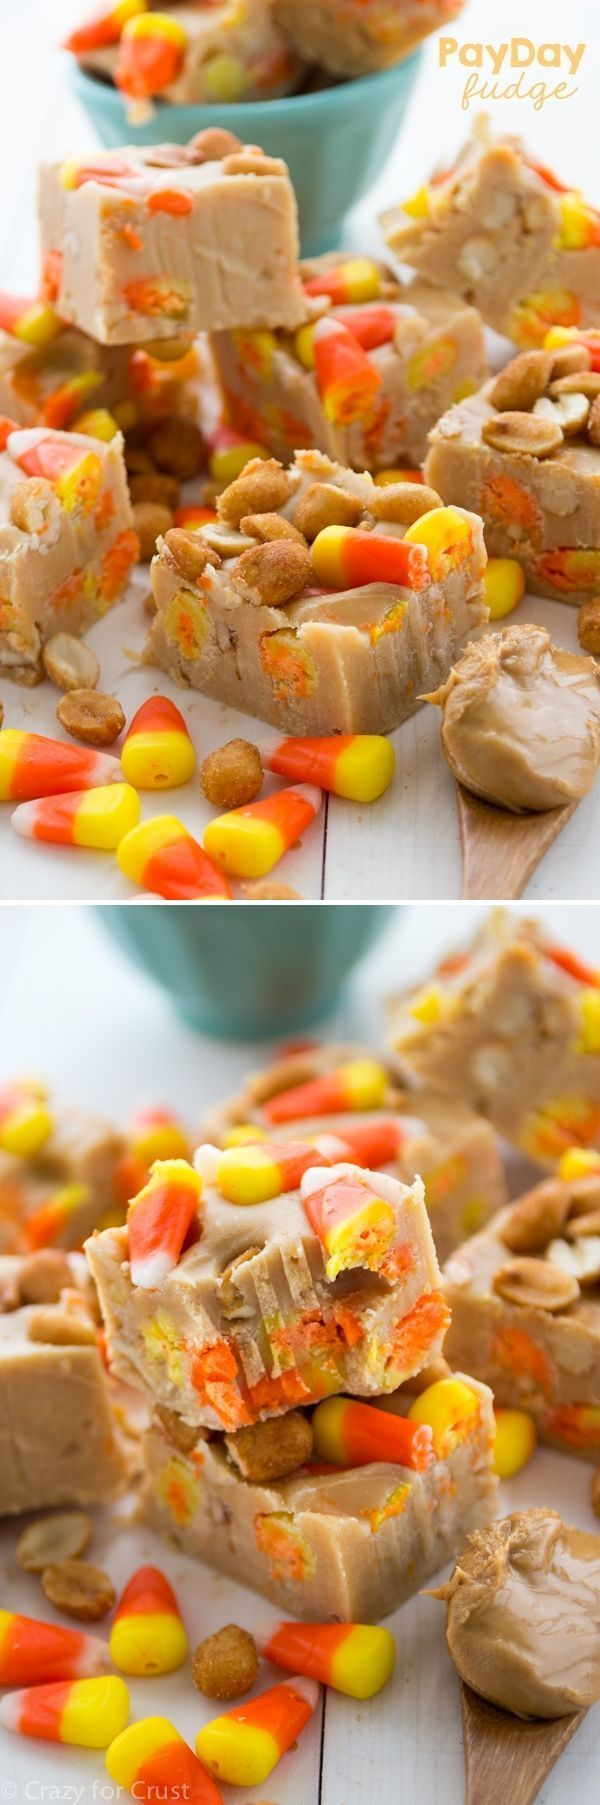 Payday Fudge Recipe Butter, Candy corn and Peanuts